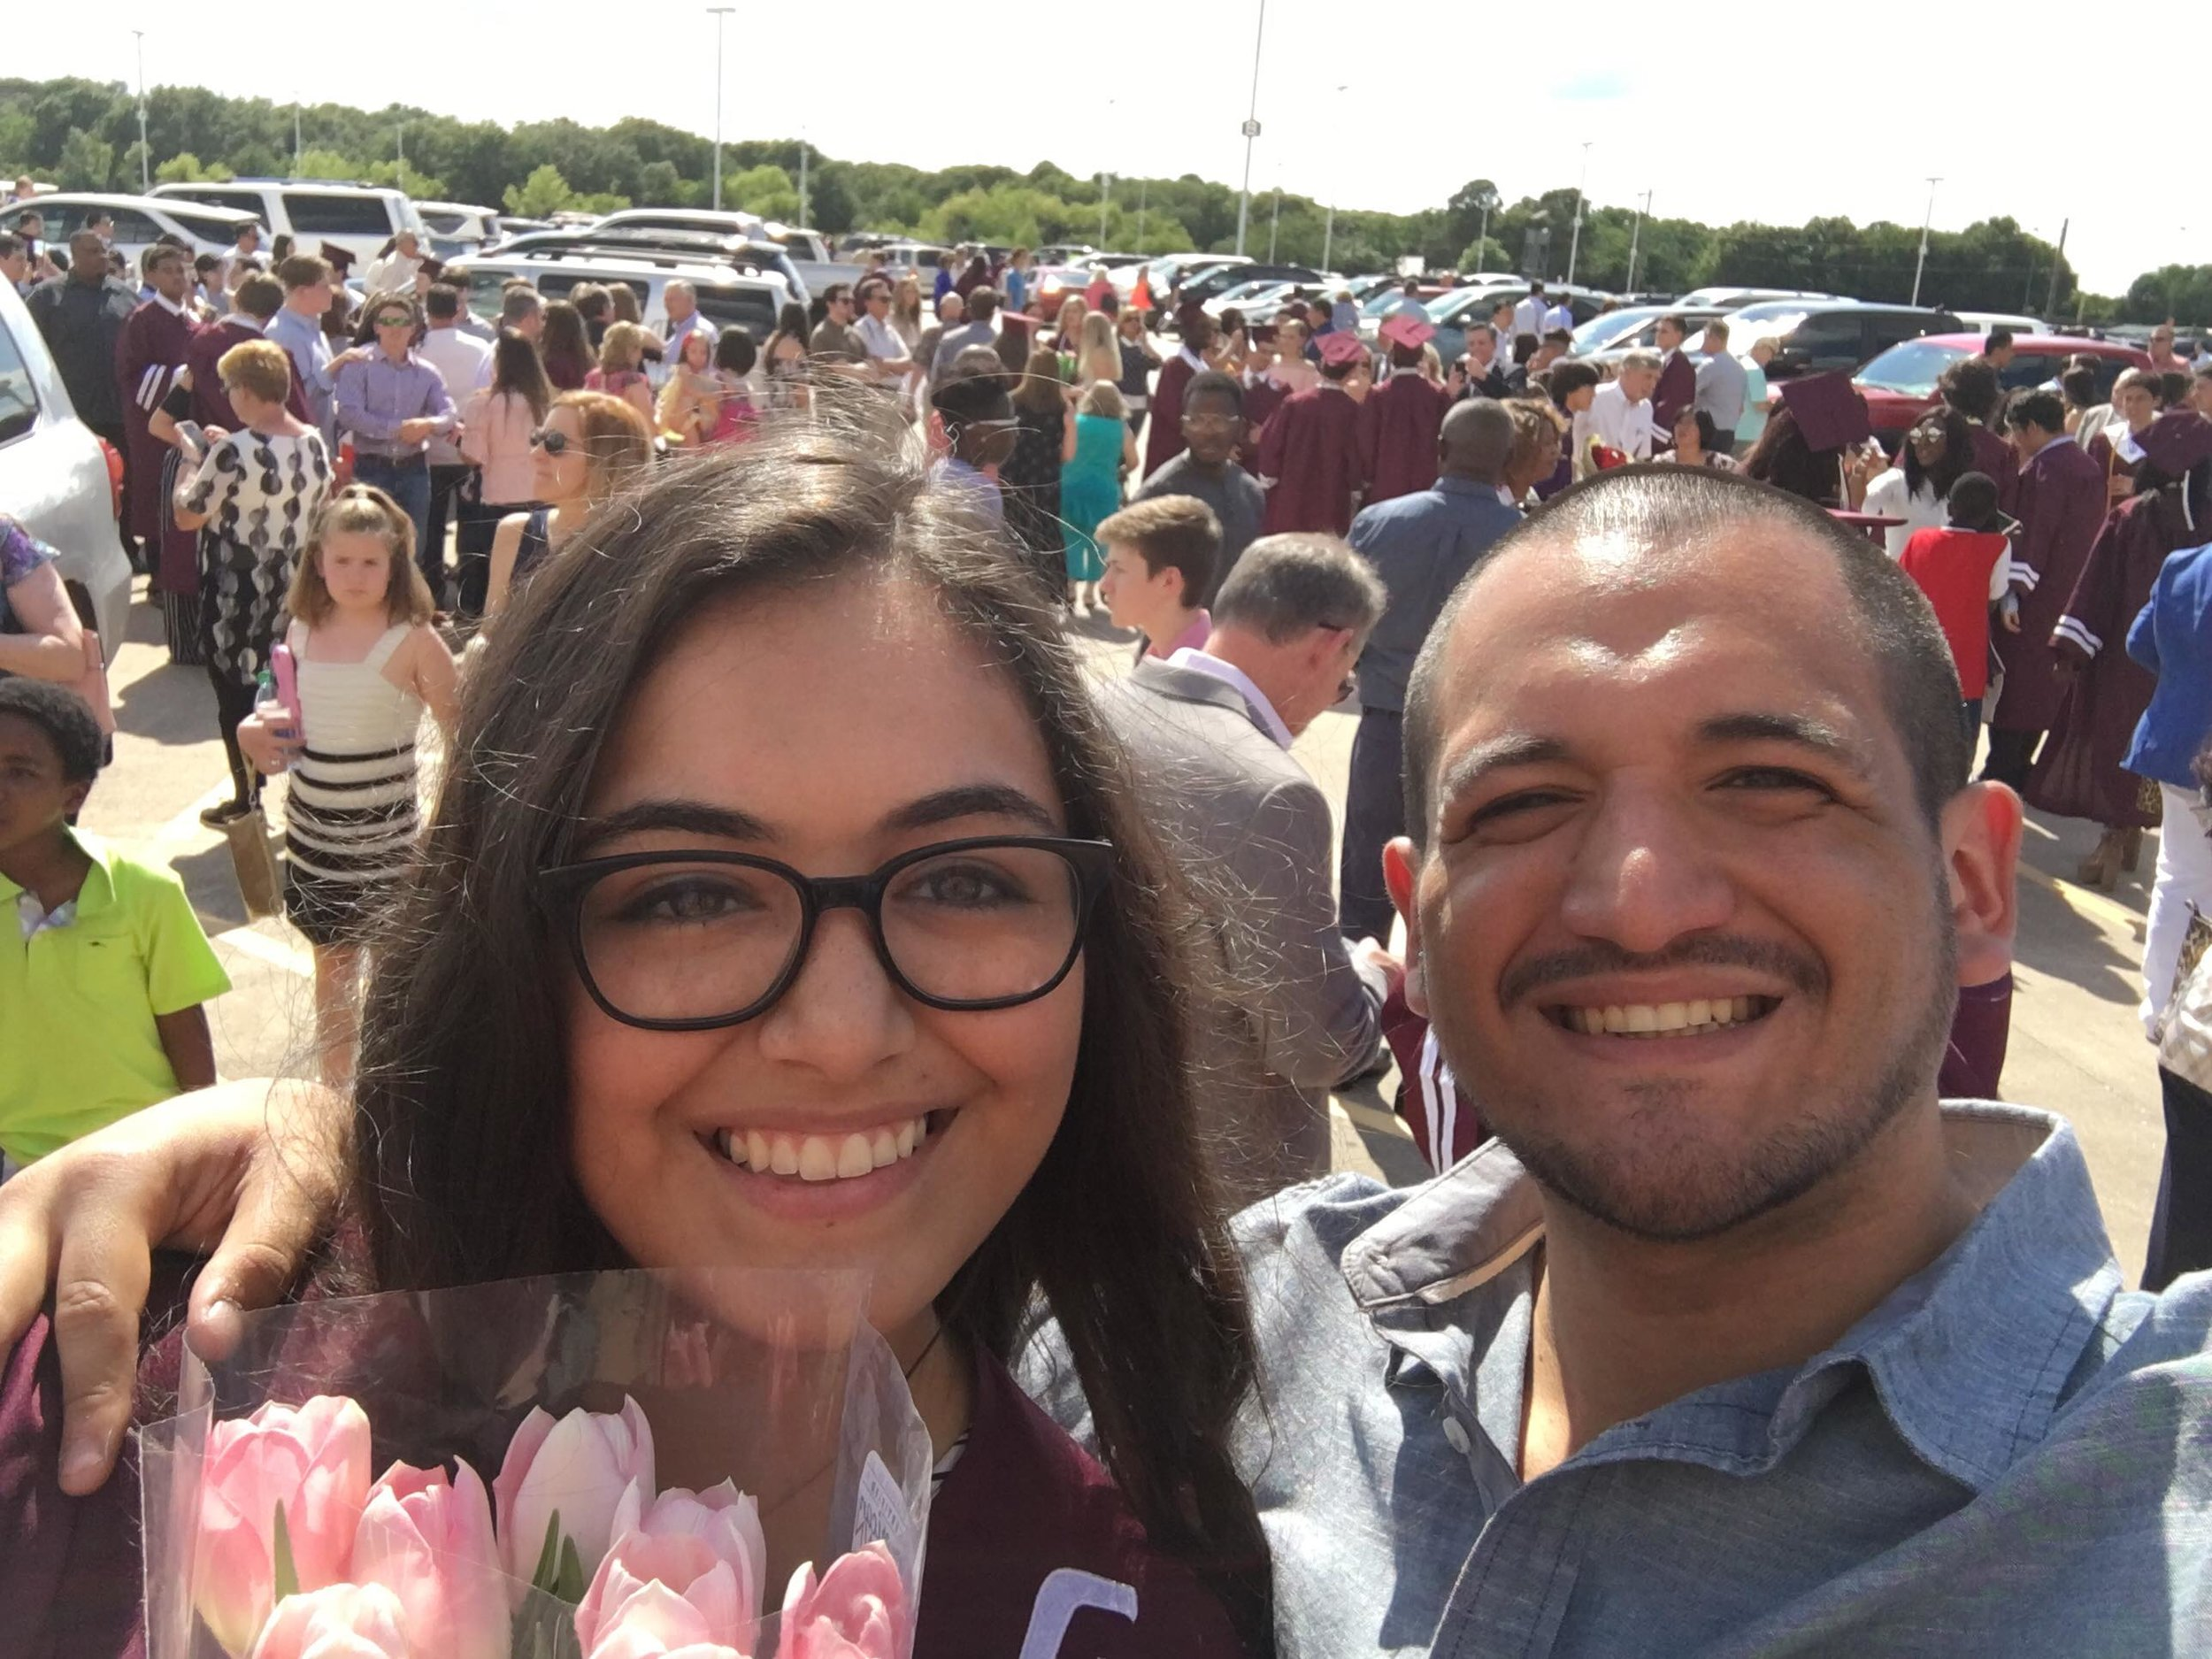 My sister graduated high school!